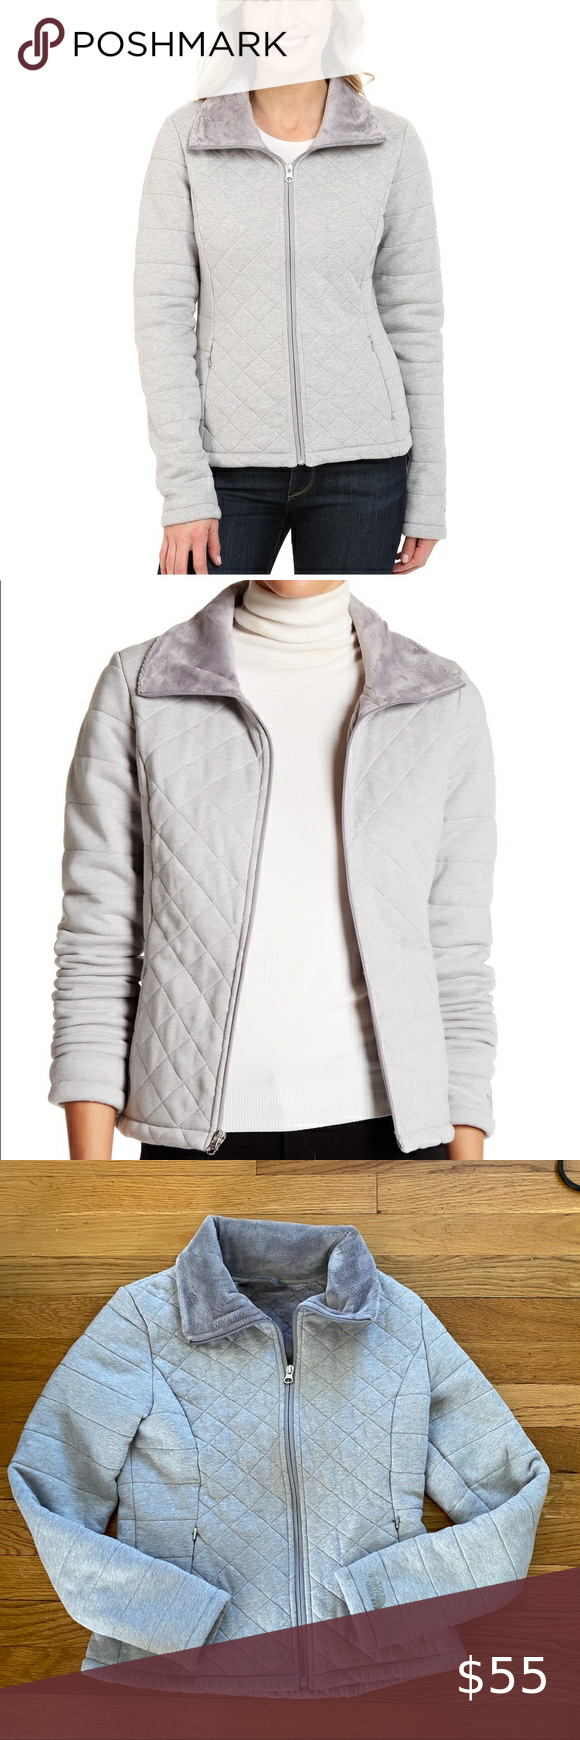 The North Face Caroluna Crop Jacket Midweight Fleece Jacket Crafted In A Shorter Sporty 24 Length Relaxed Fit Soft C Crop Jacket North Face Jacket Jackets [ 1740 x 580 Pixel ]